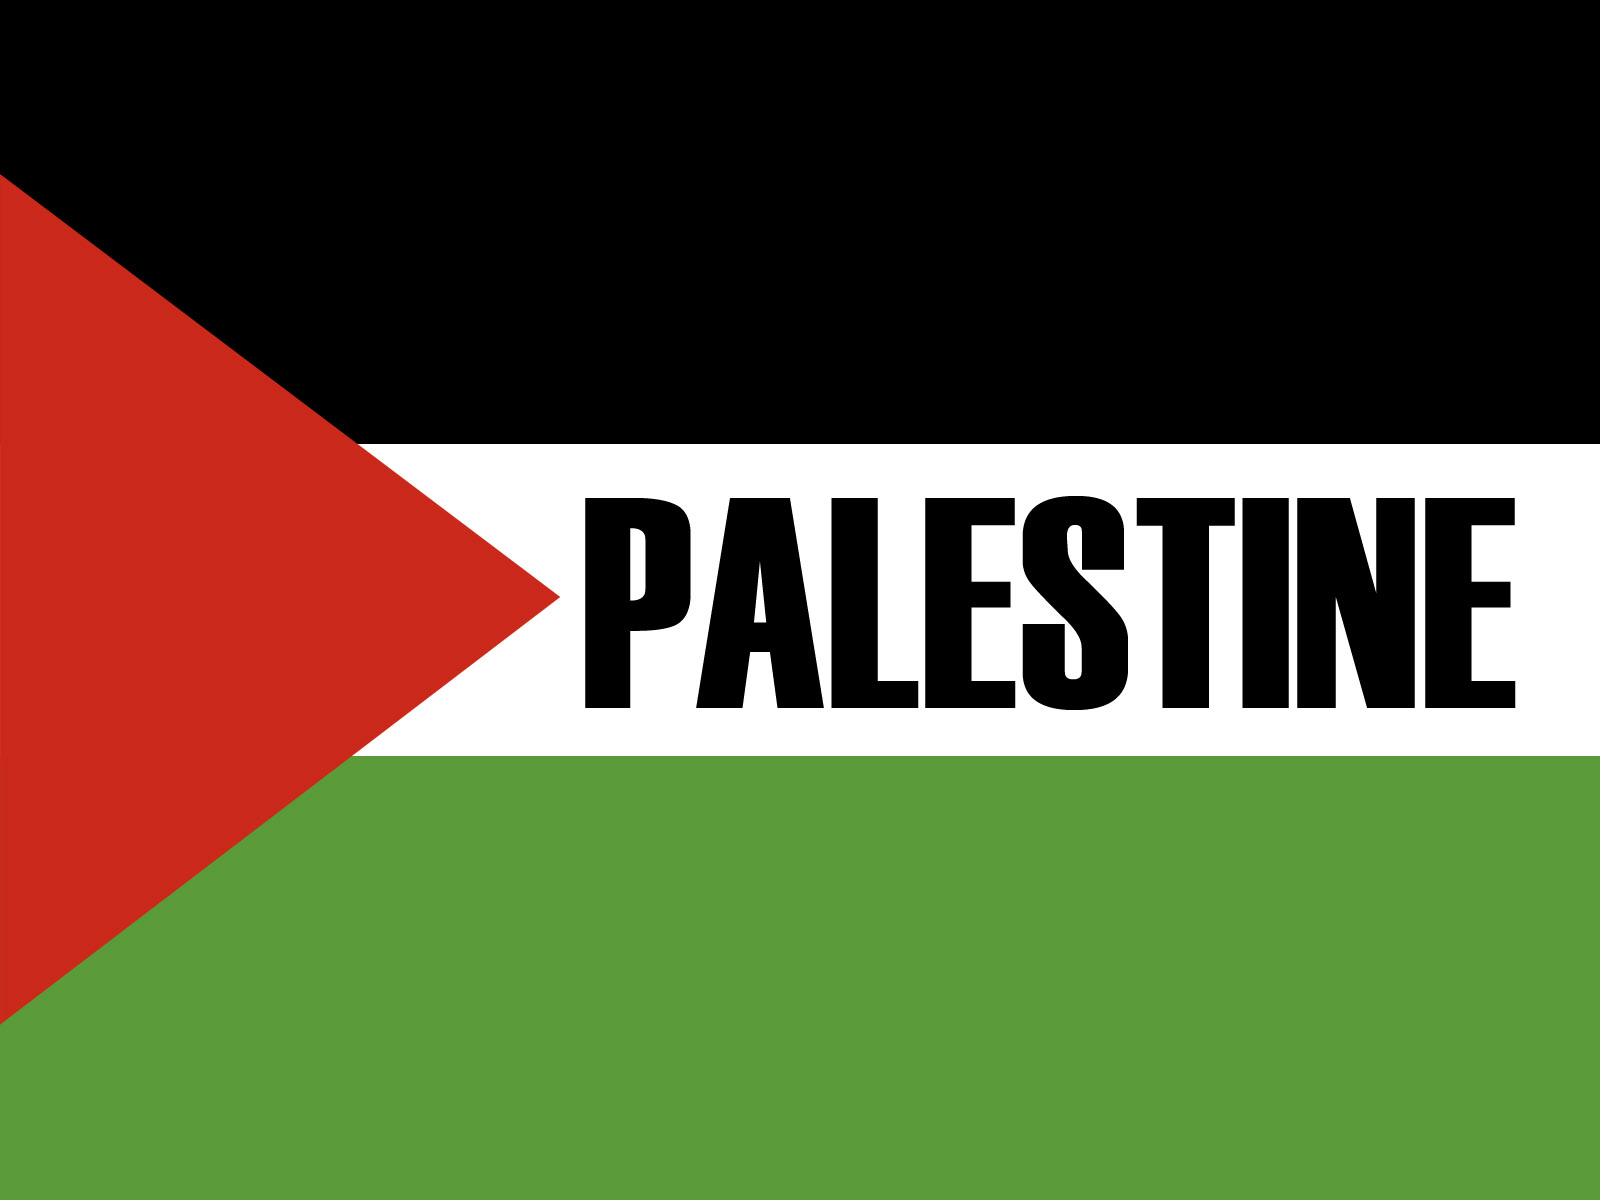 Palestine wallpapers pakistani politics news world sports - Palestine flag wallpaper hd ...